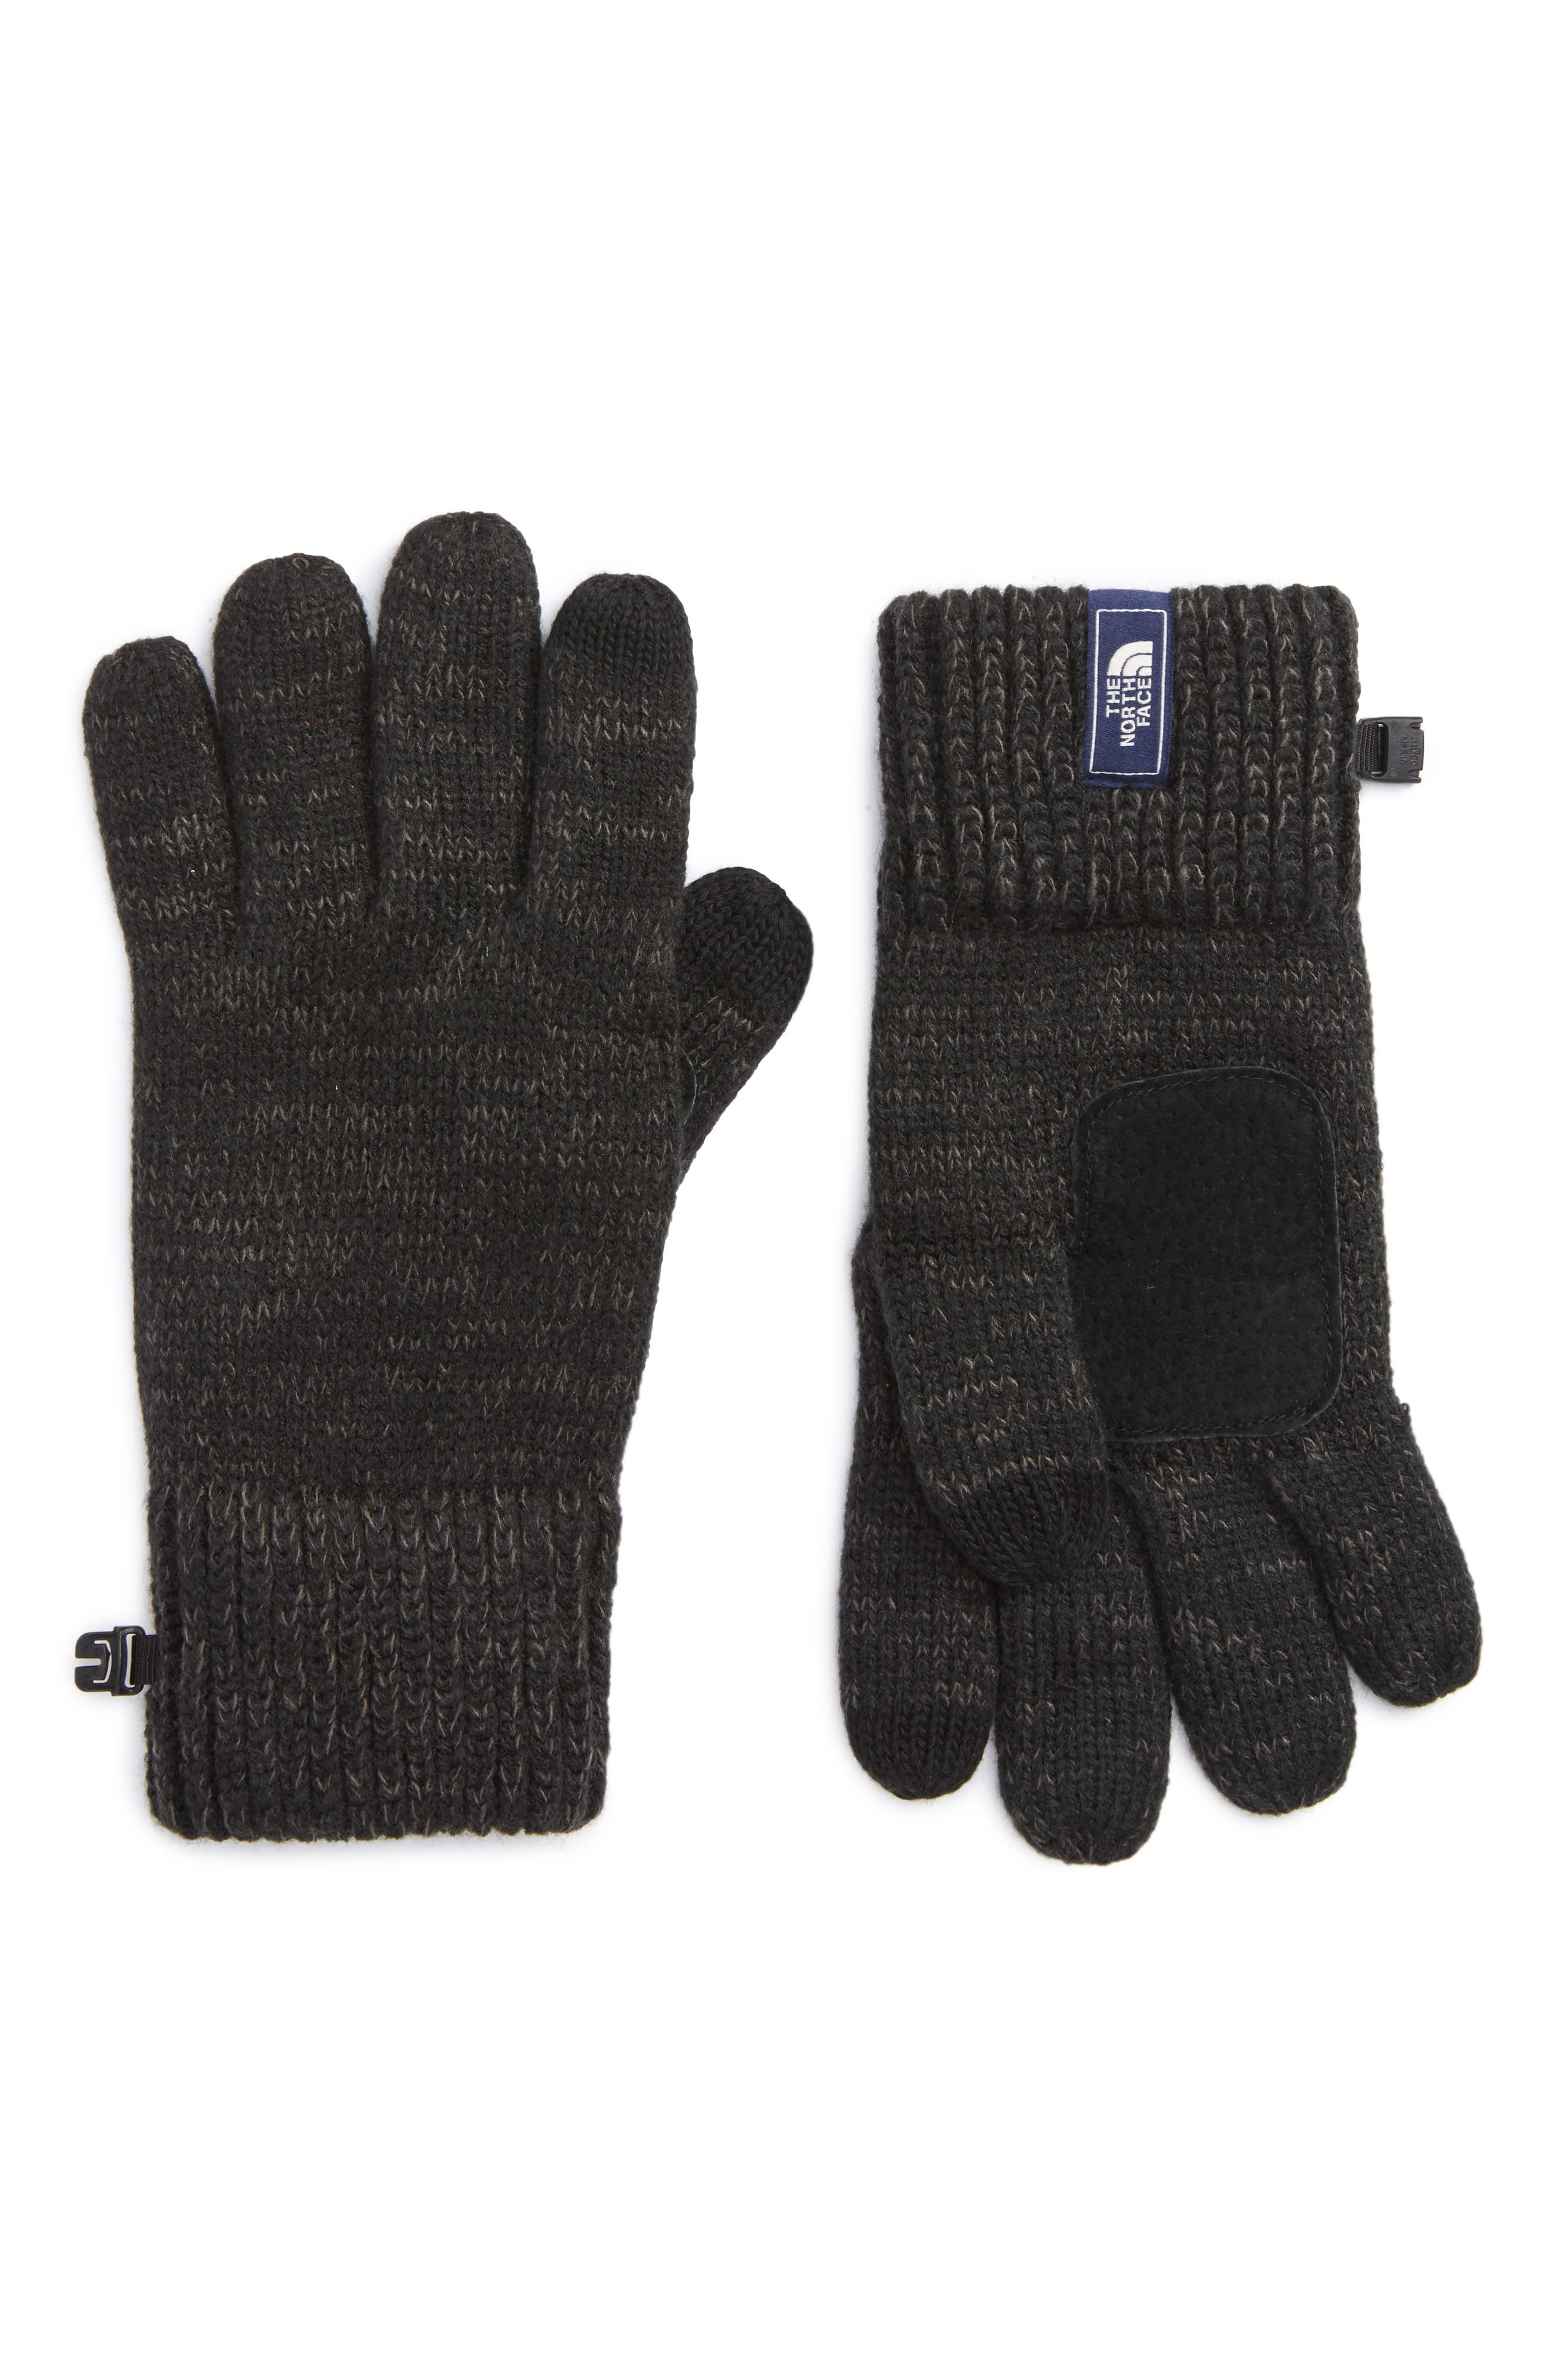 Etip Salty Dog Knit Tech Gloves,                             Main thumbnail 1, color,                             001